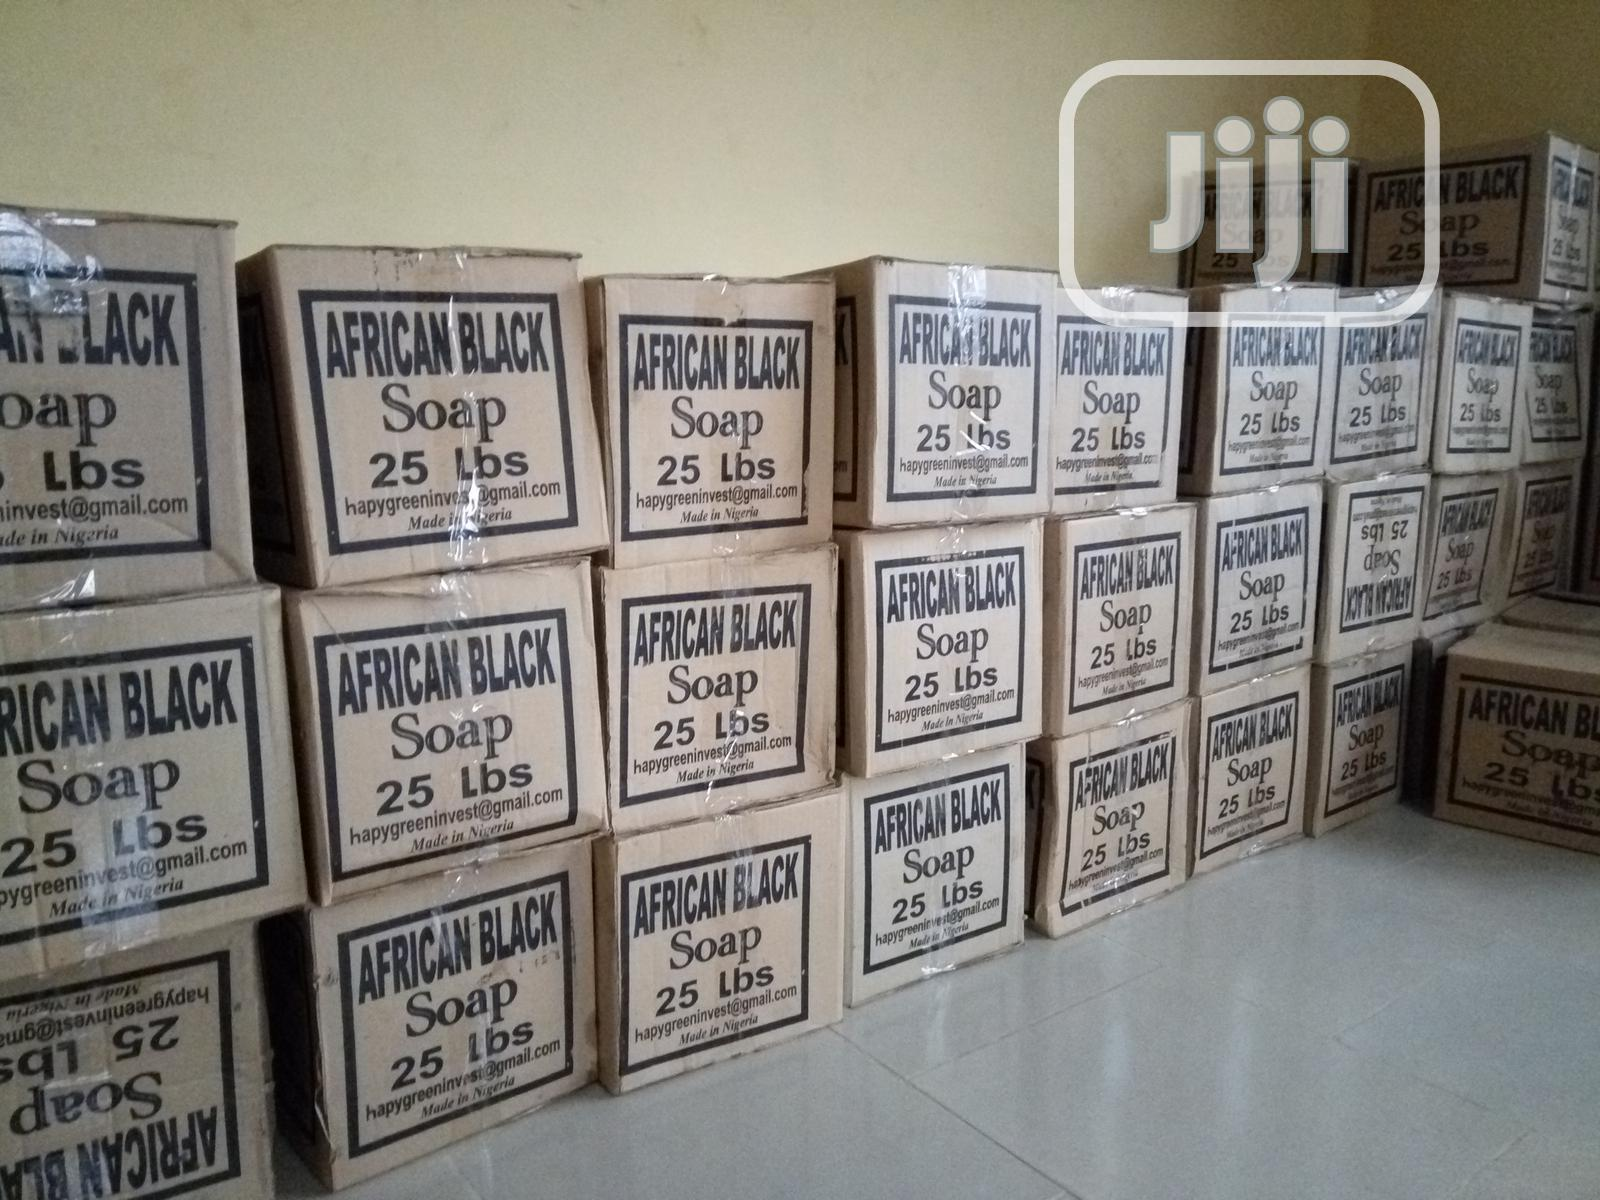 Archive: African Black Soap (25 Lbs/11.25kg)